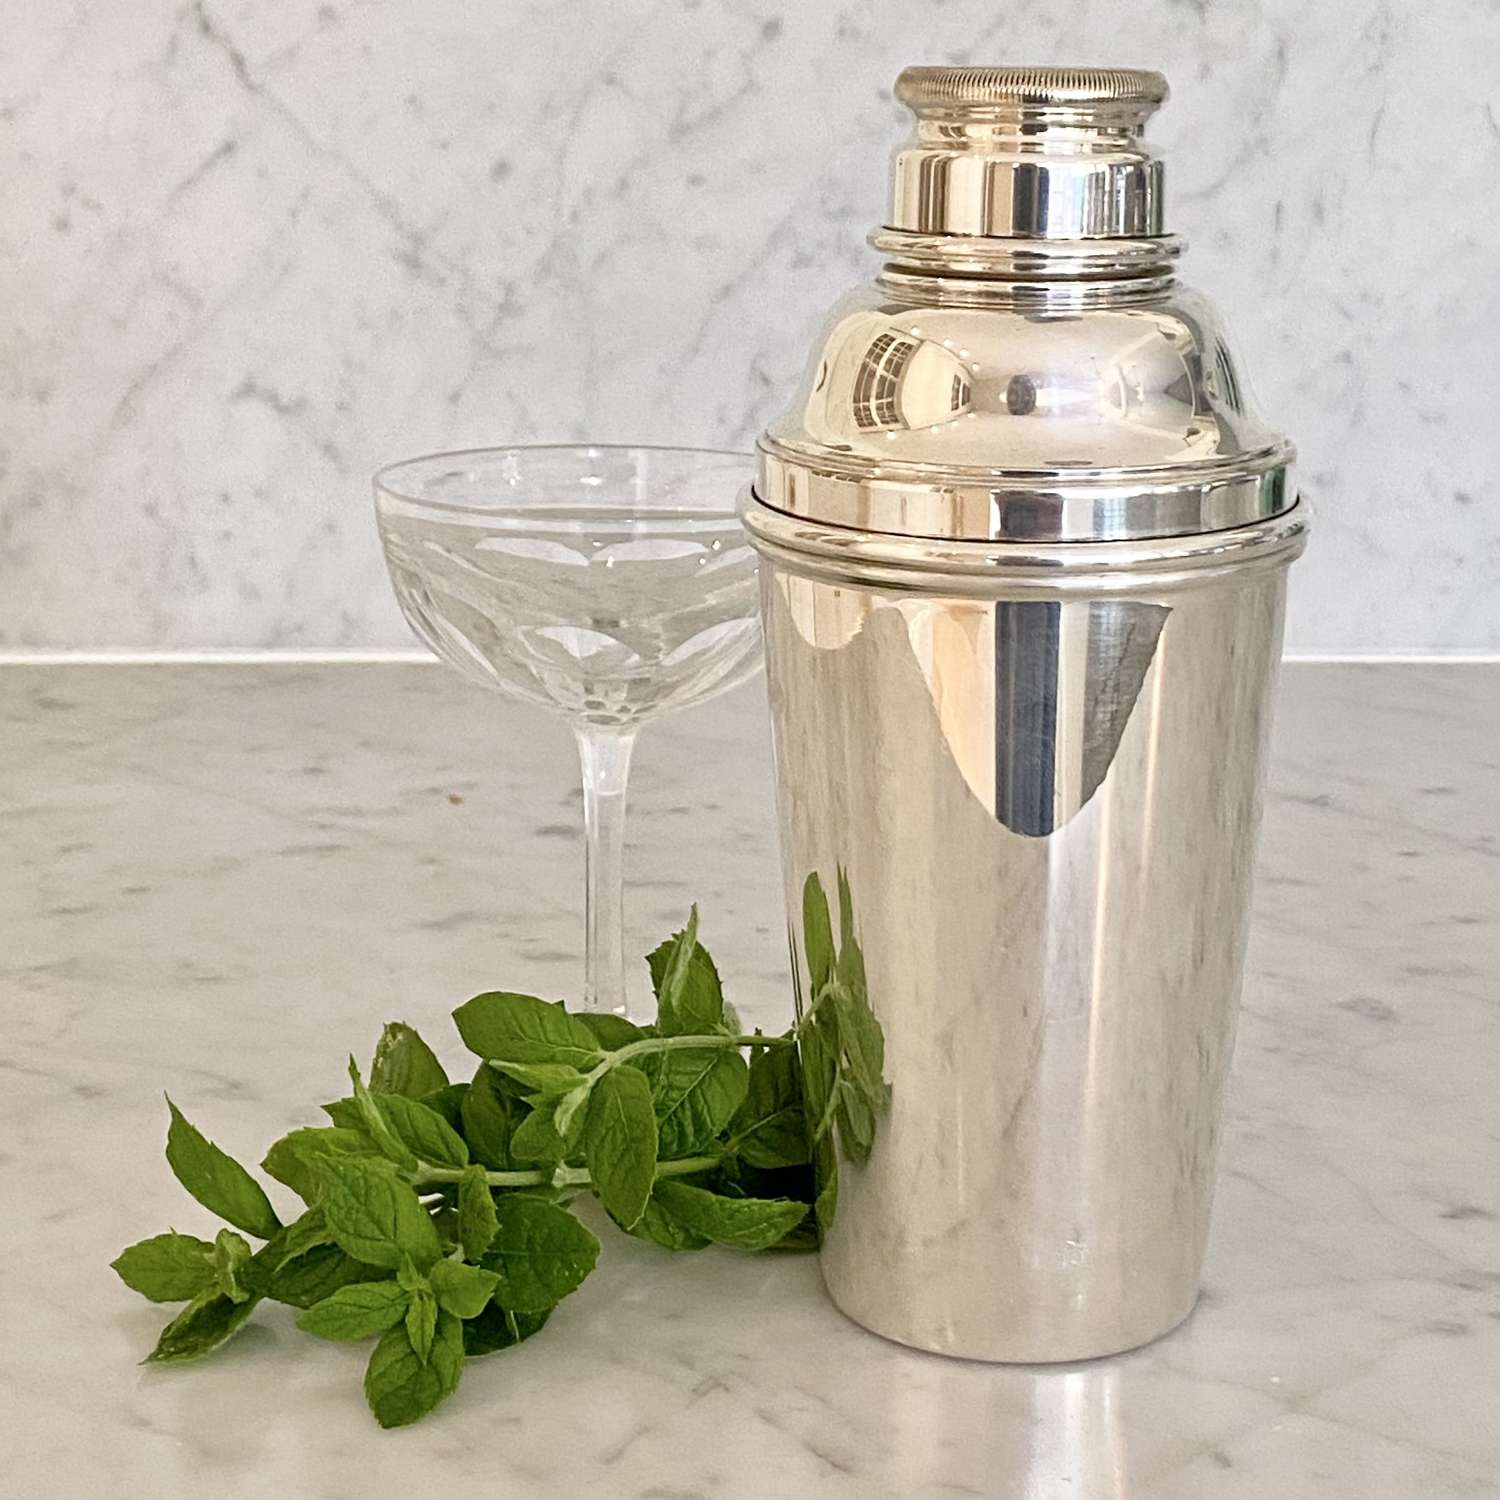 Classic Art Deco silver plated cocktail shaker